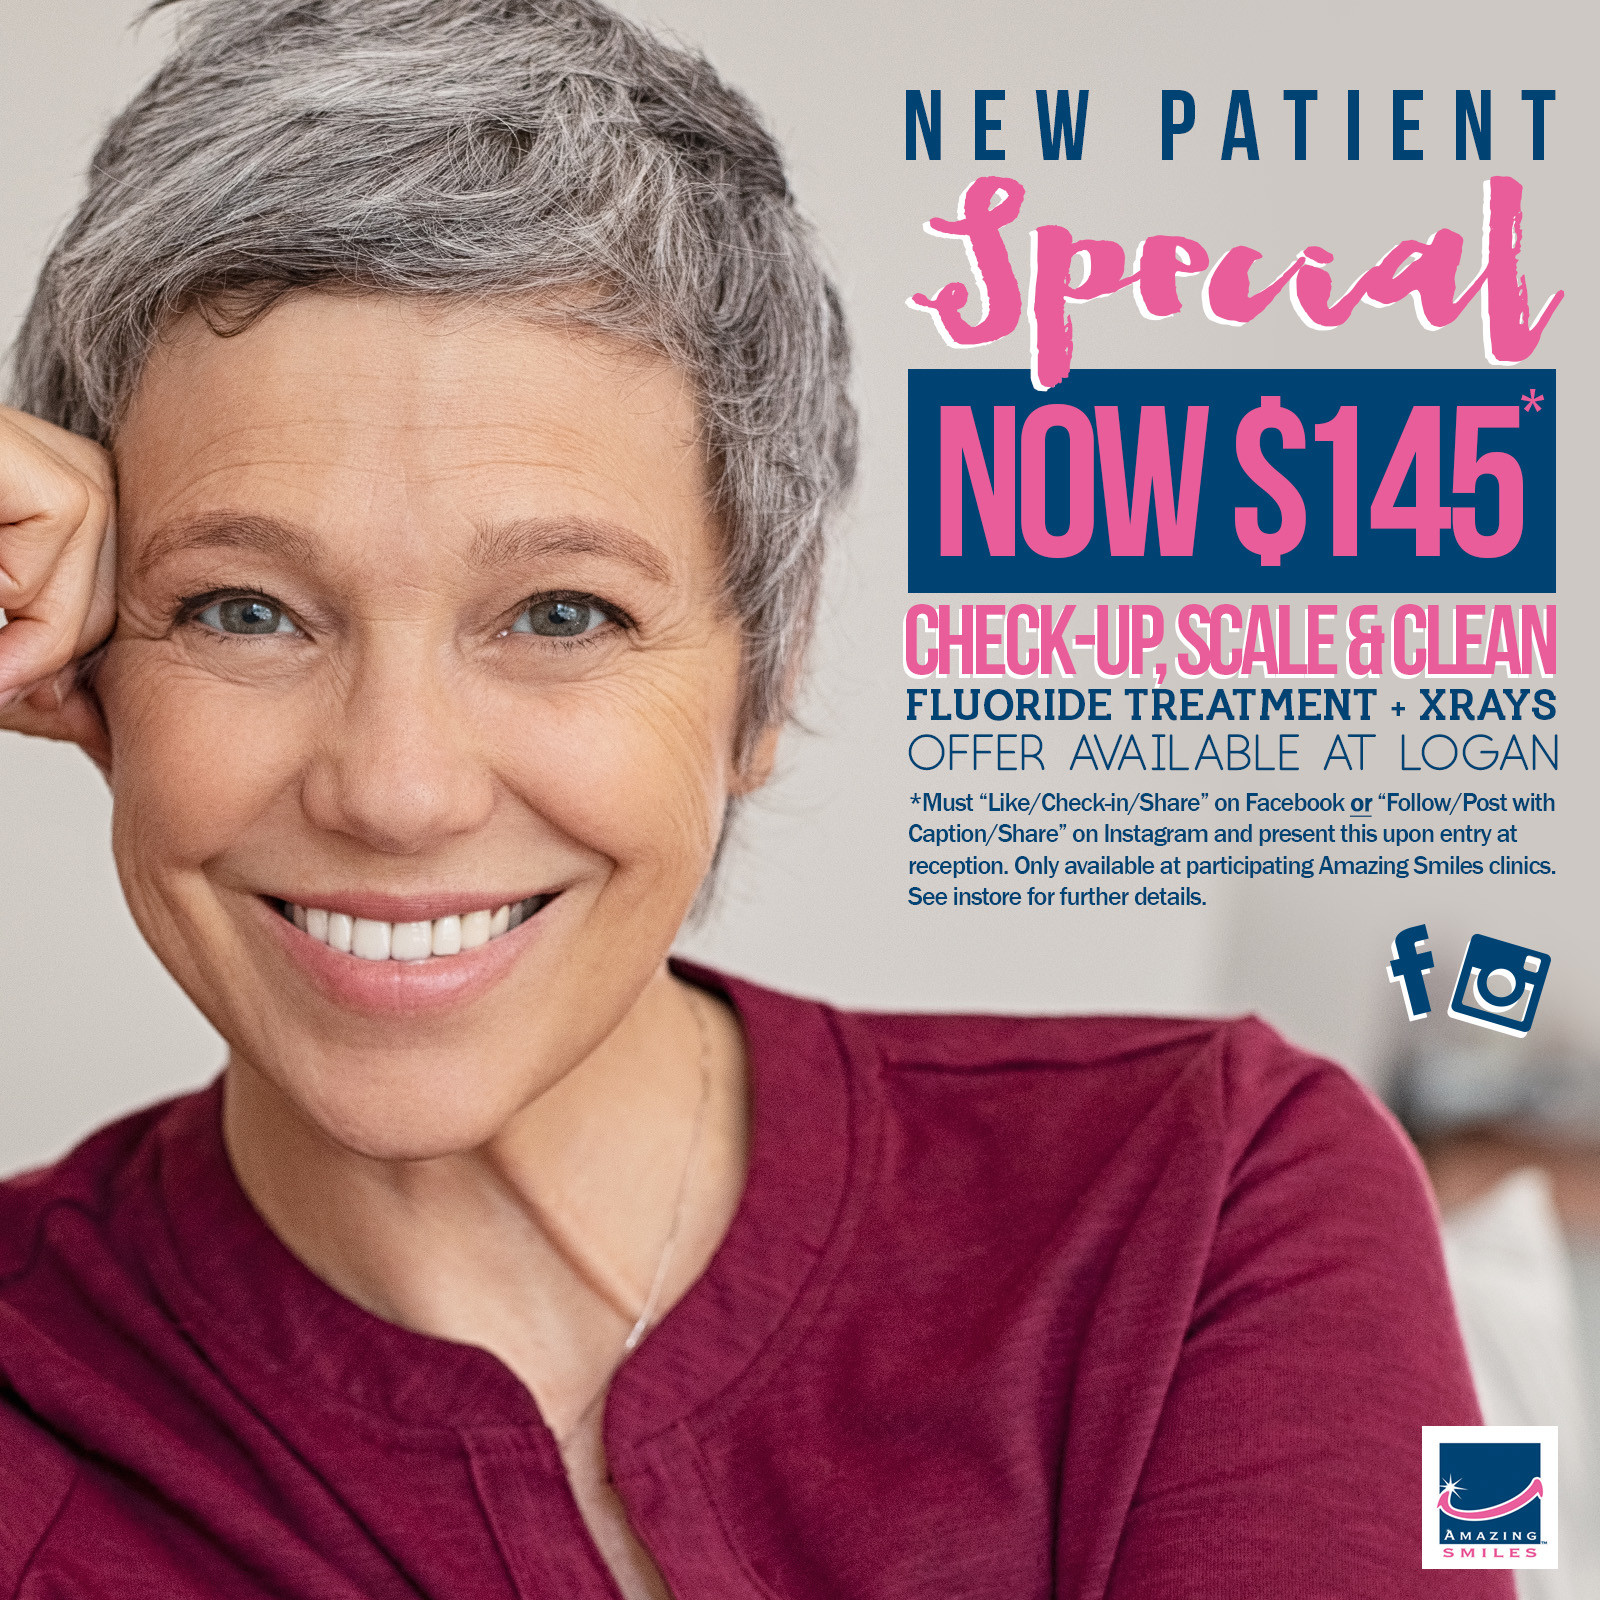 New Patient Special at Logan Dentist